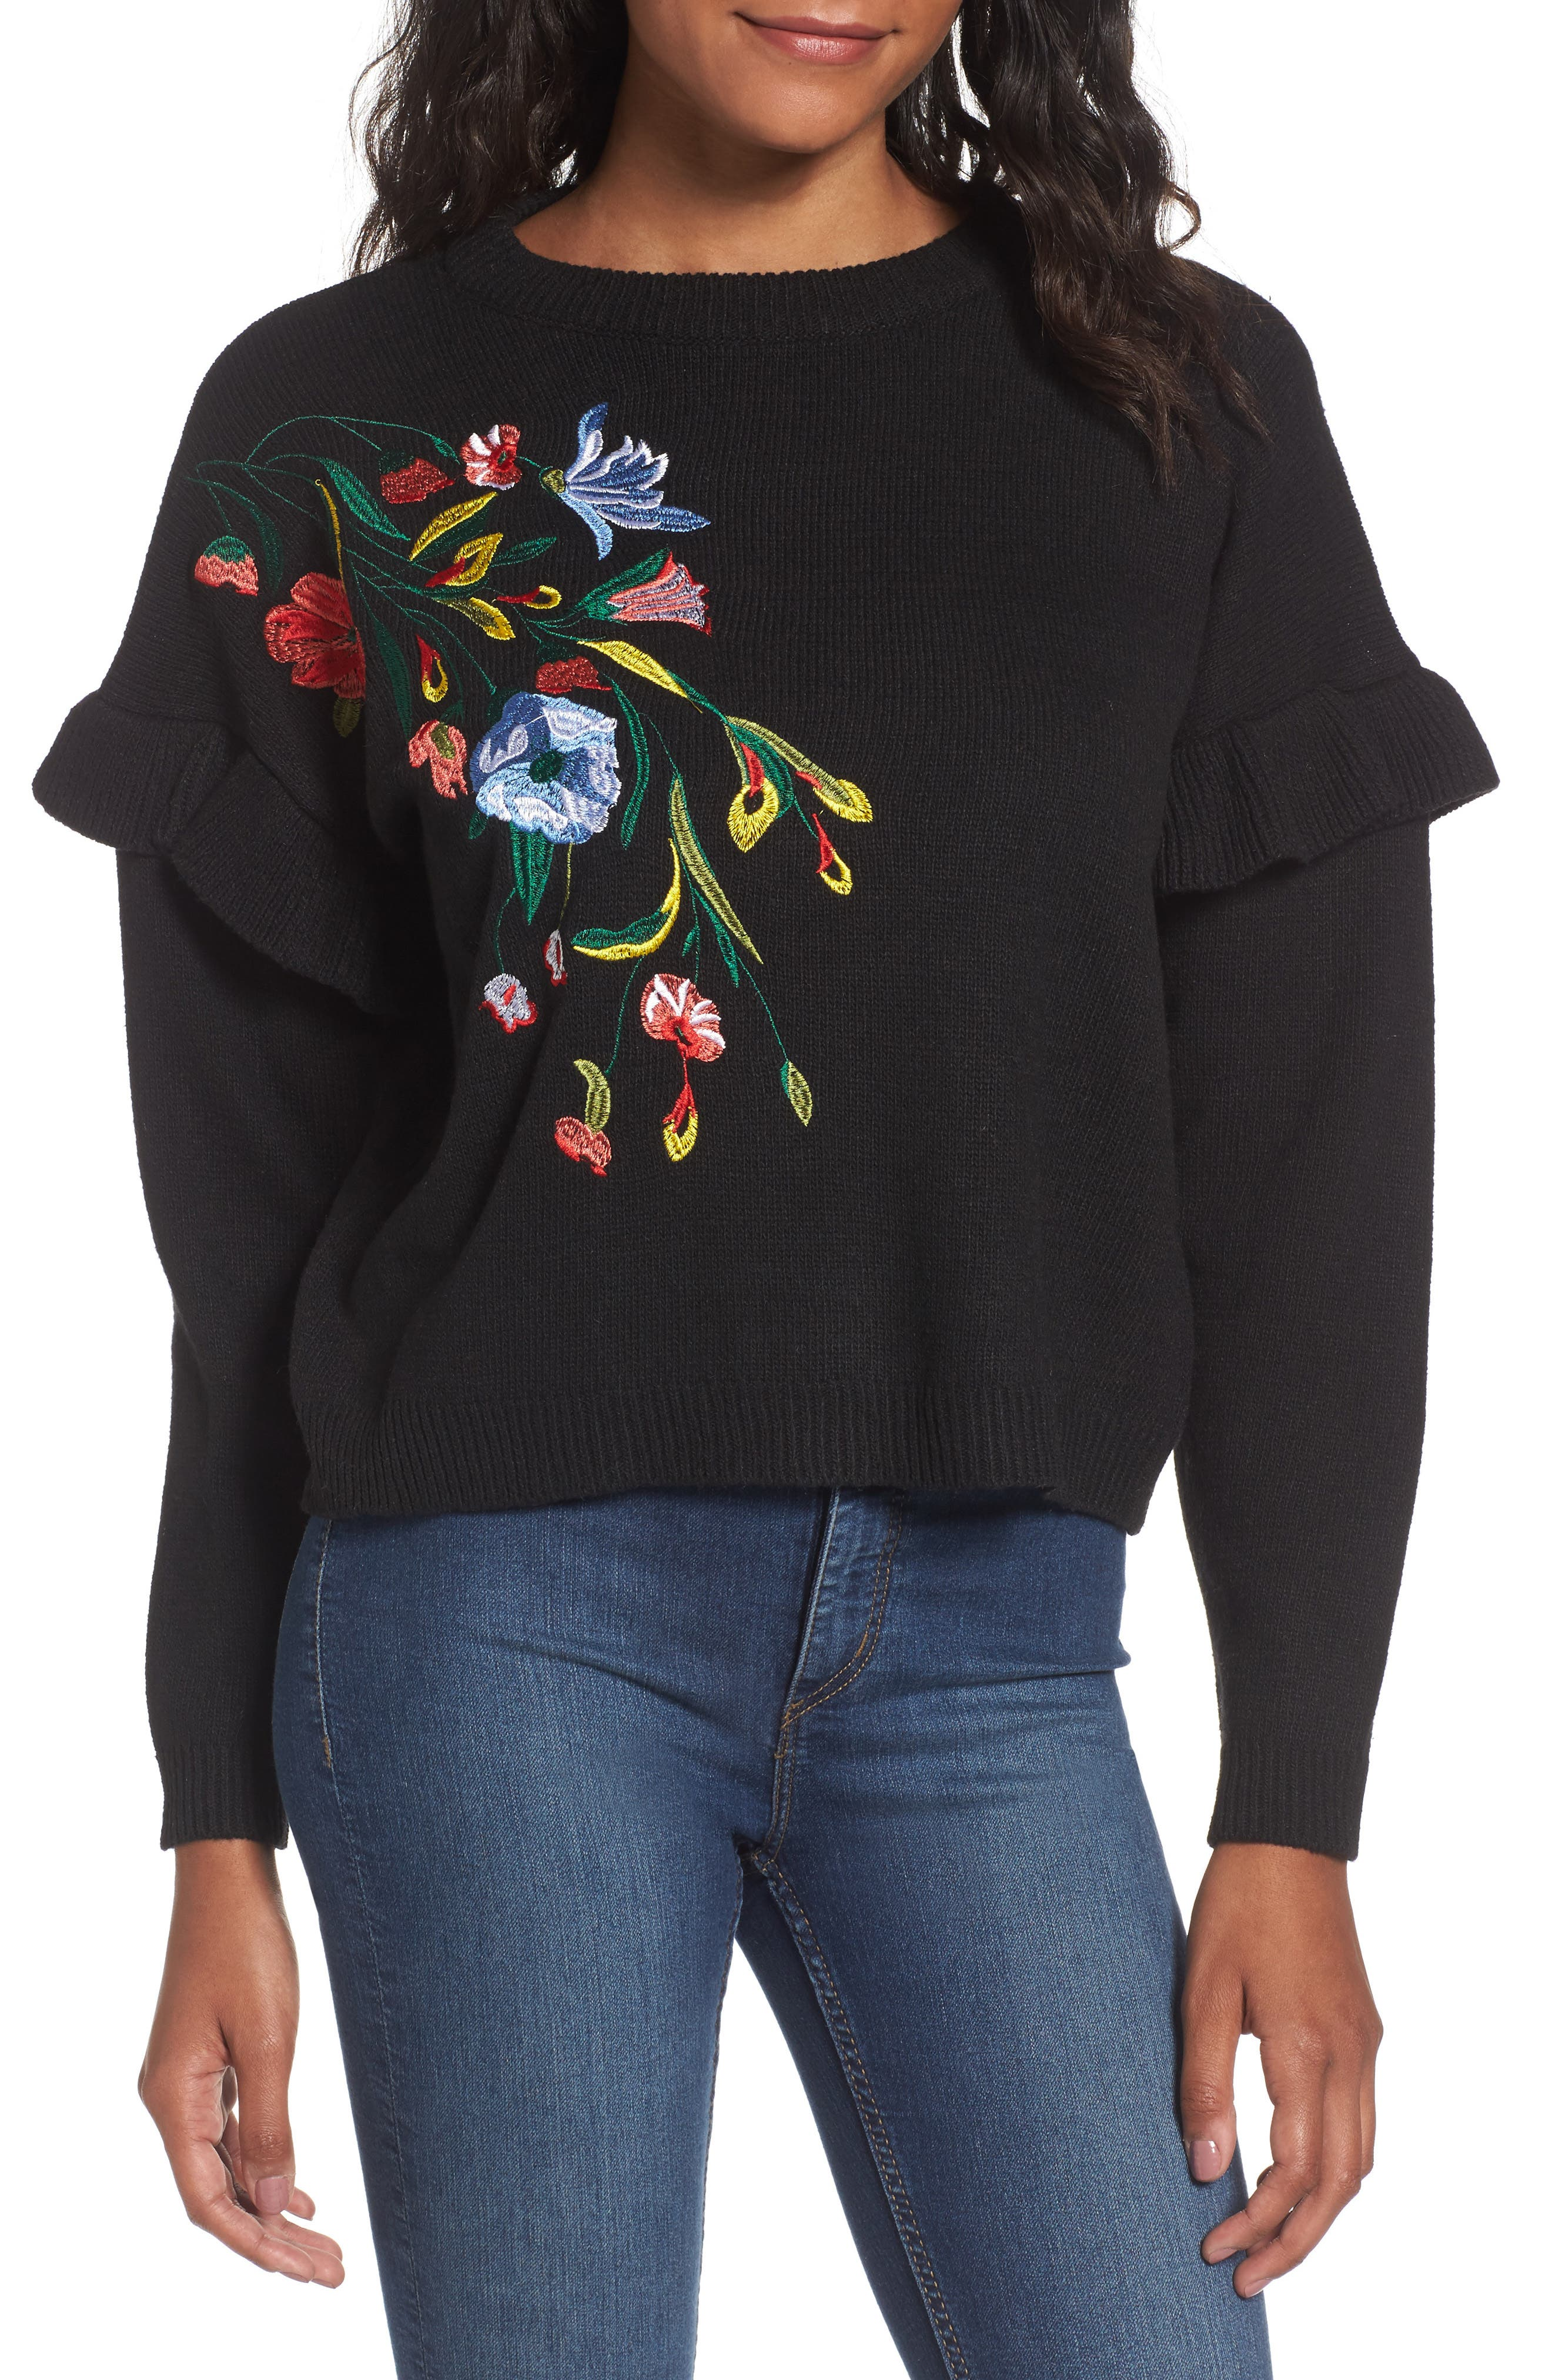 Ruffle Sleeve Embroidered Sweater,                         Main,                         color, Black